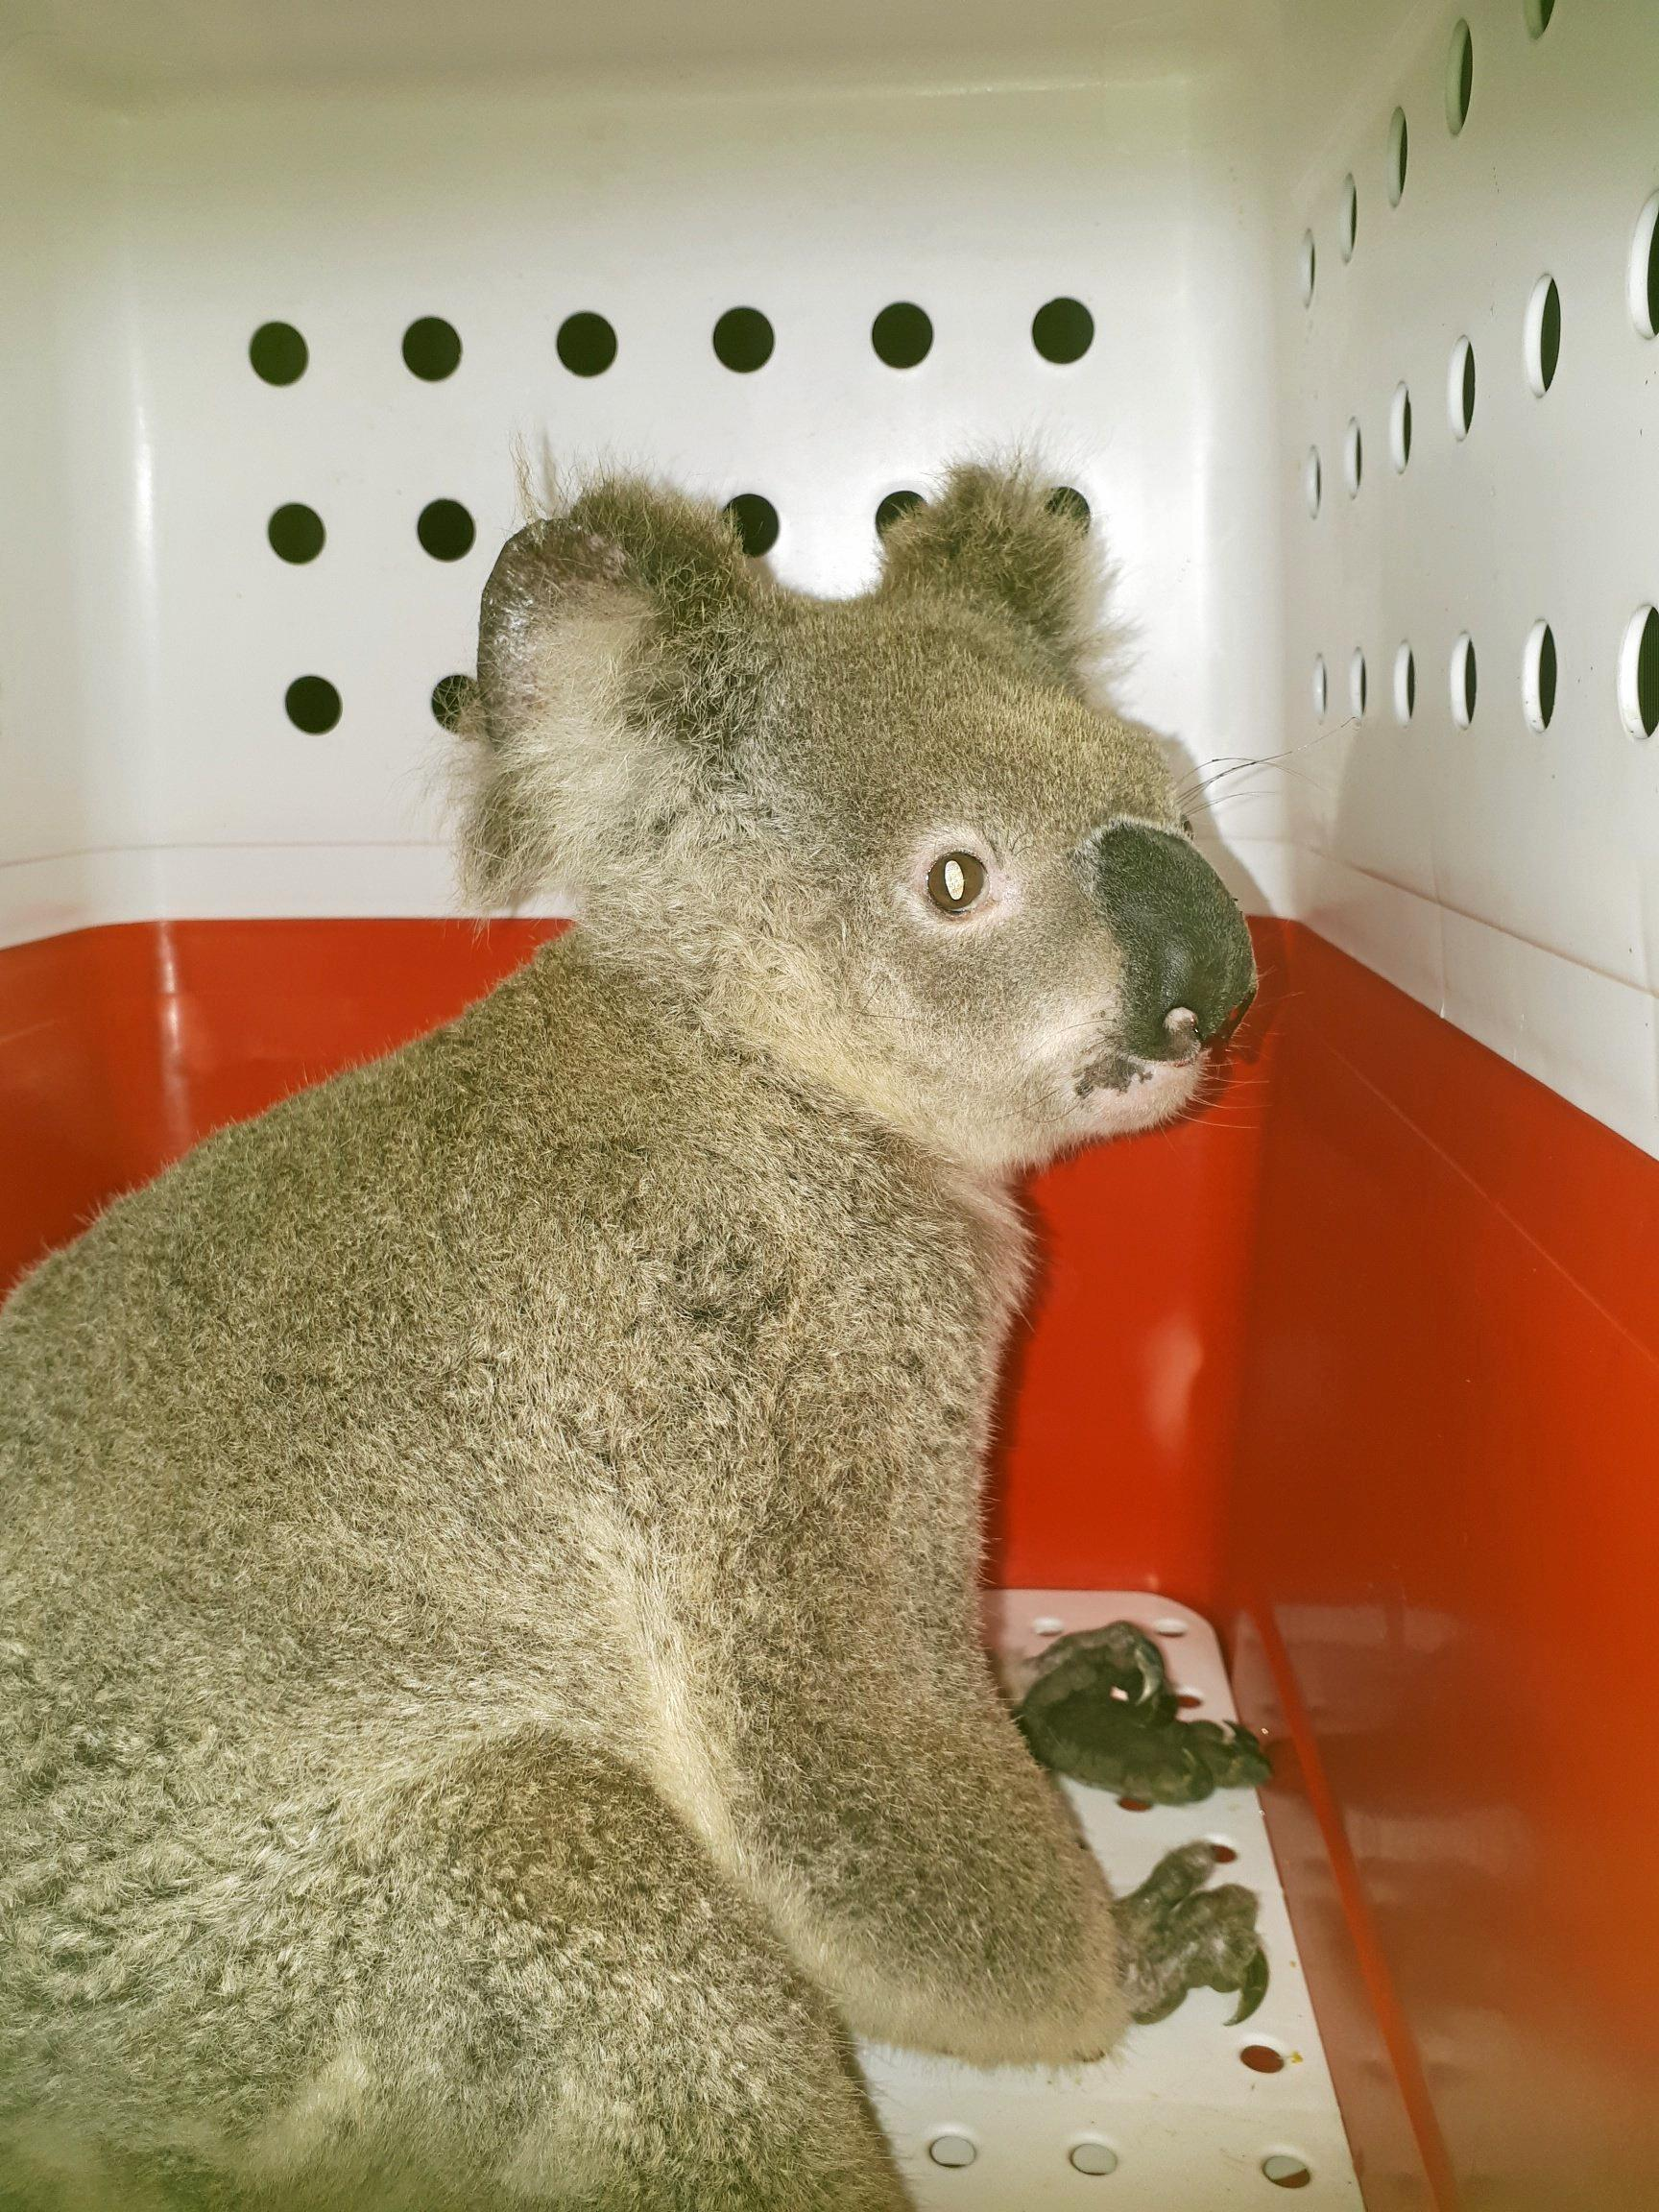 This road-struck koala died from critical injuries after Tracey rushed it to Australia Zoo in the middle of the night.